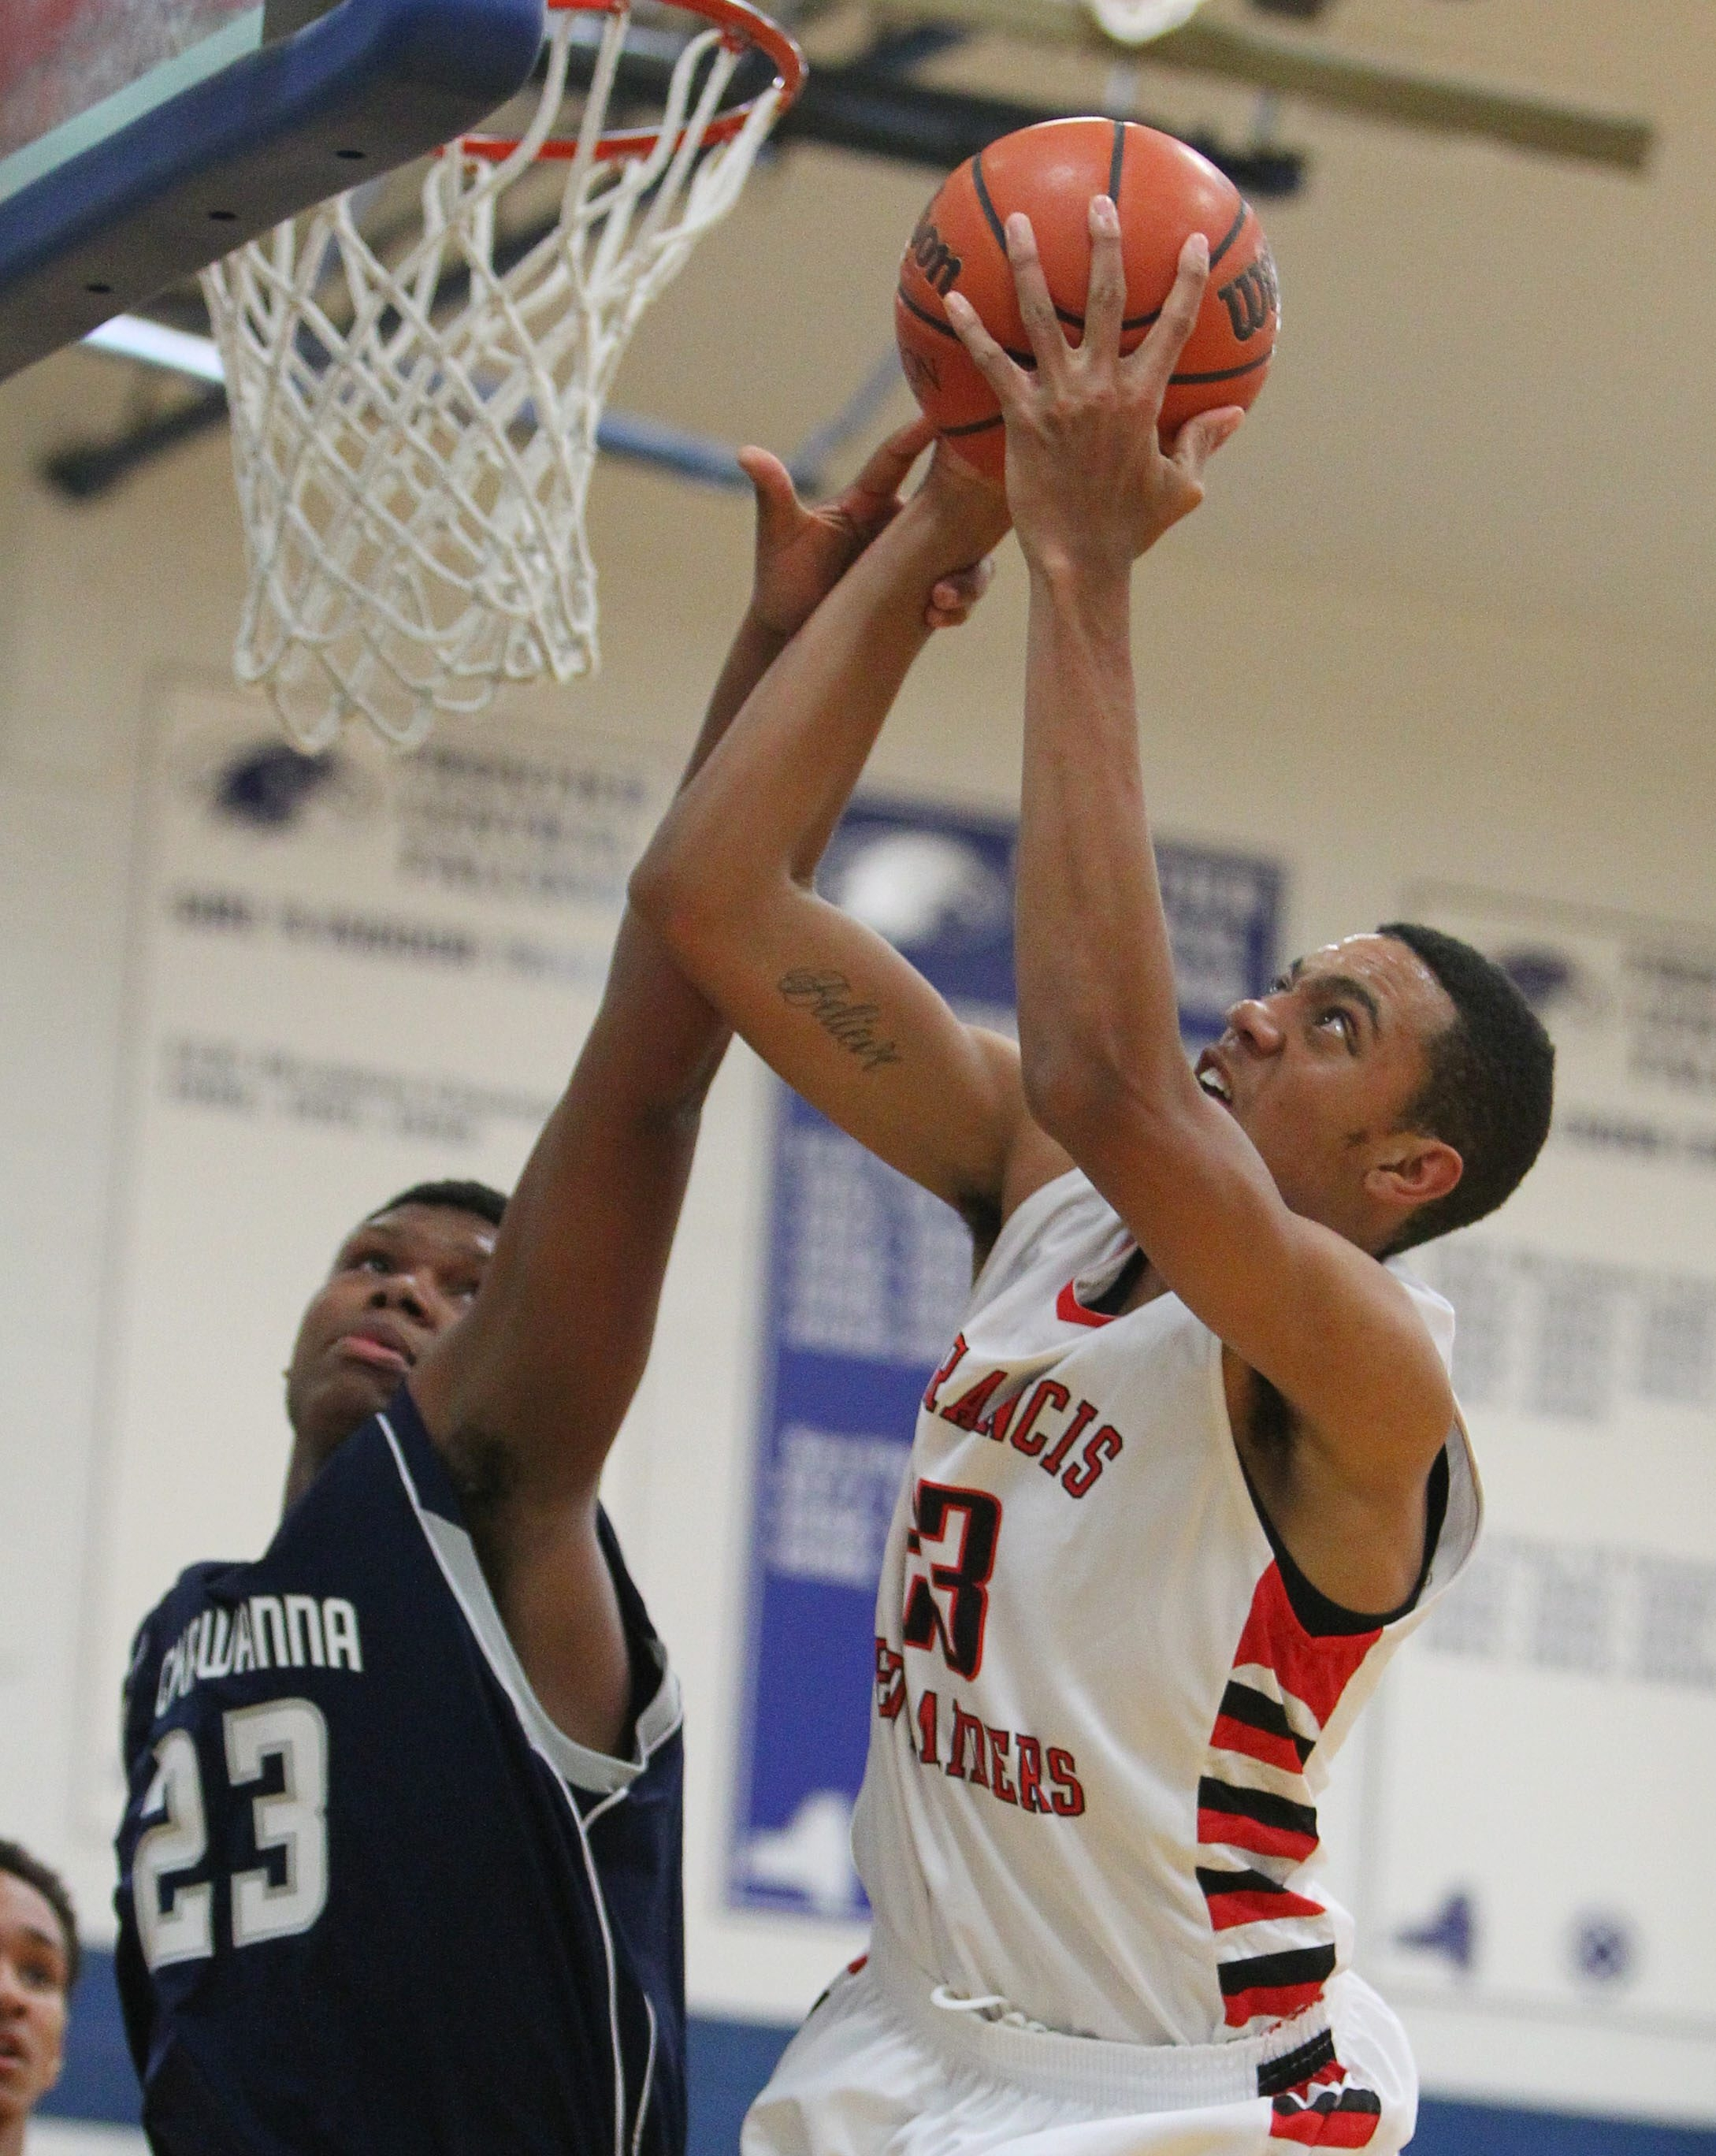 St. Francis' Trey Holness and Lackawanna's Larry Fields battle during the Town of Hamburg Lions Club Tournament.